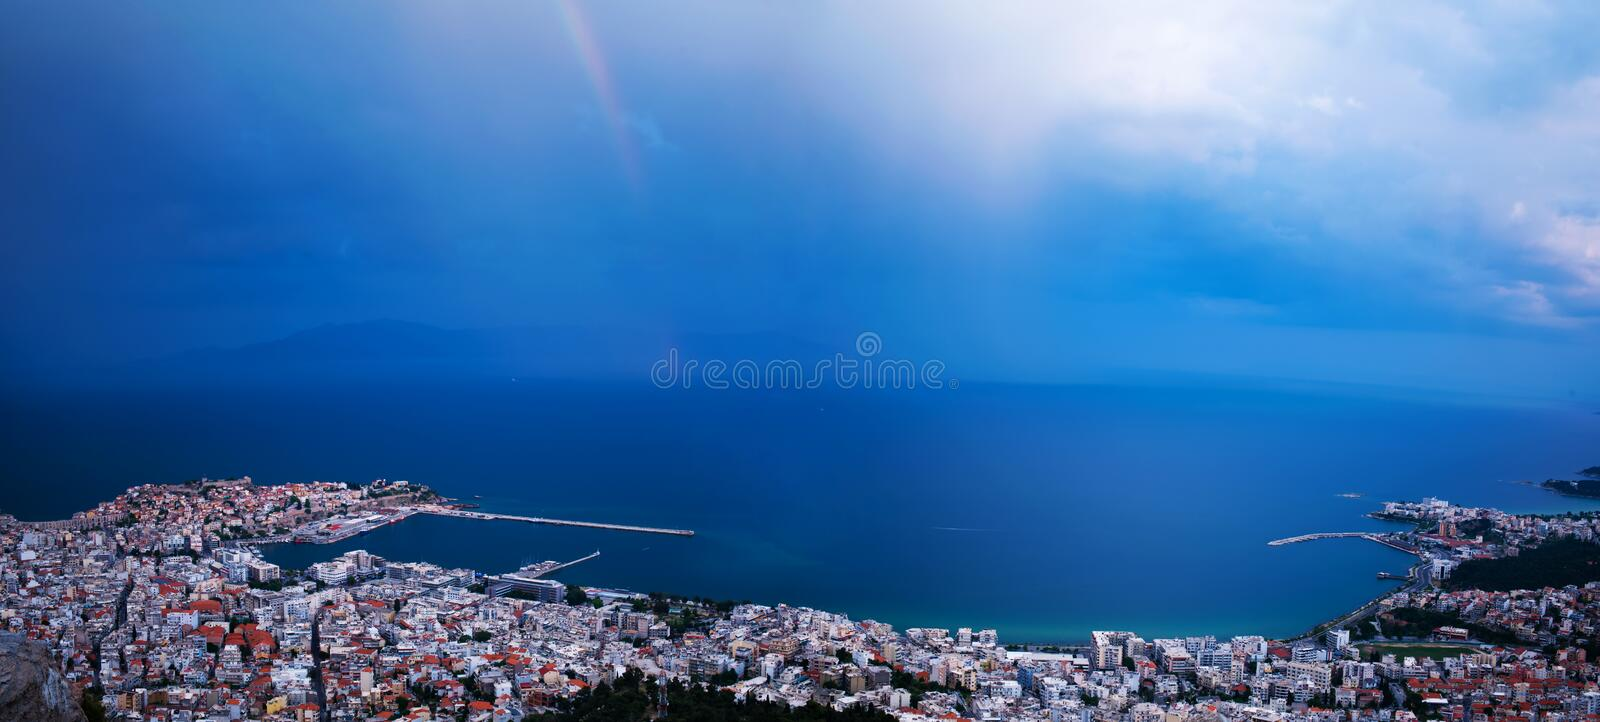 Download Rainbow over the city stock image. Image of city, electric - 27812487